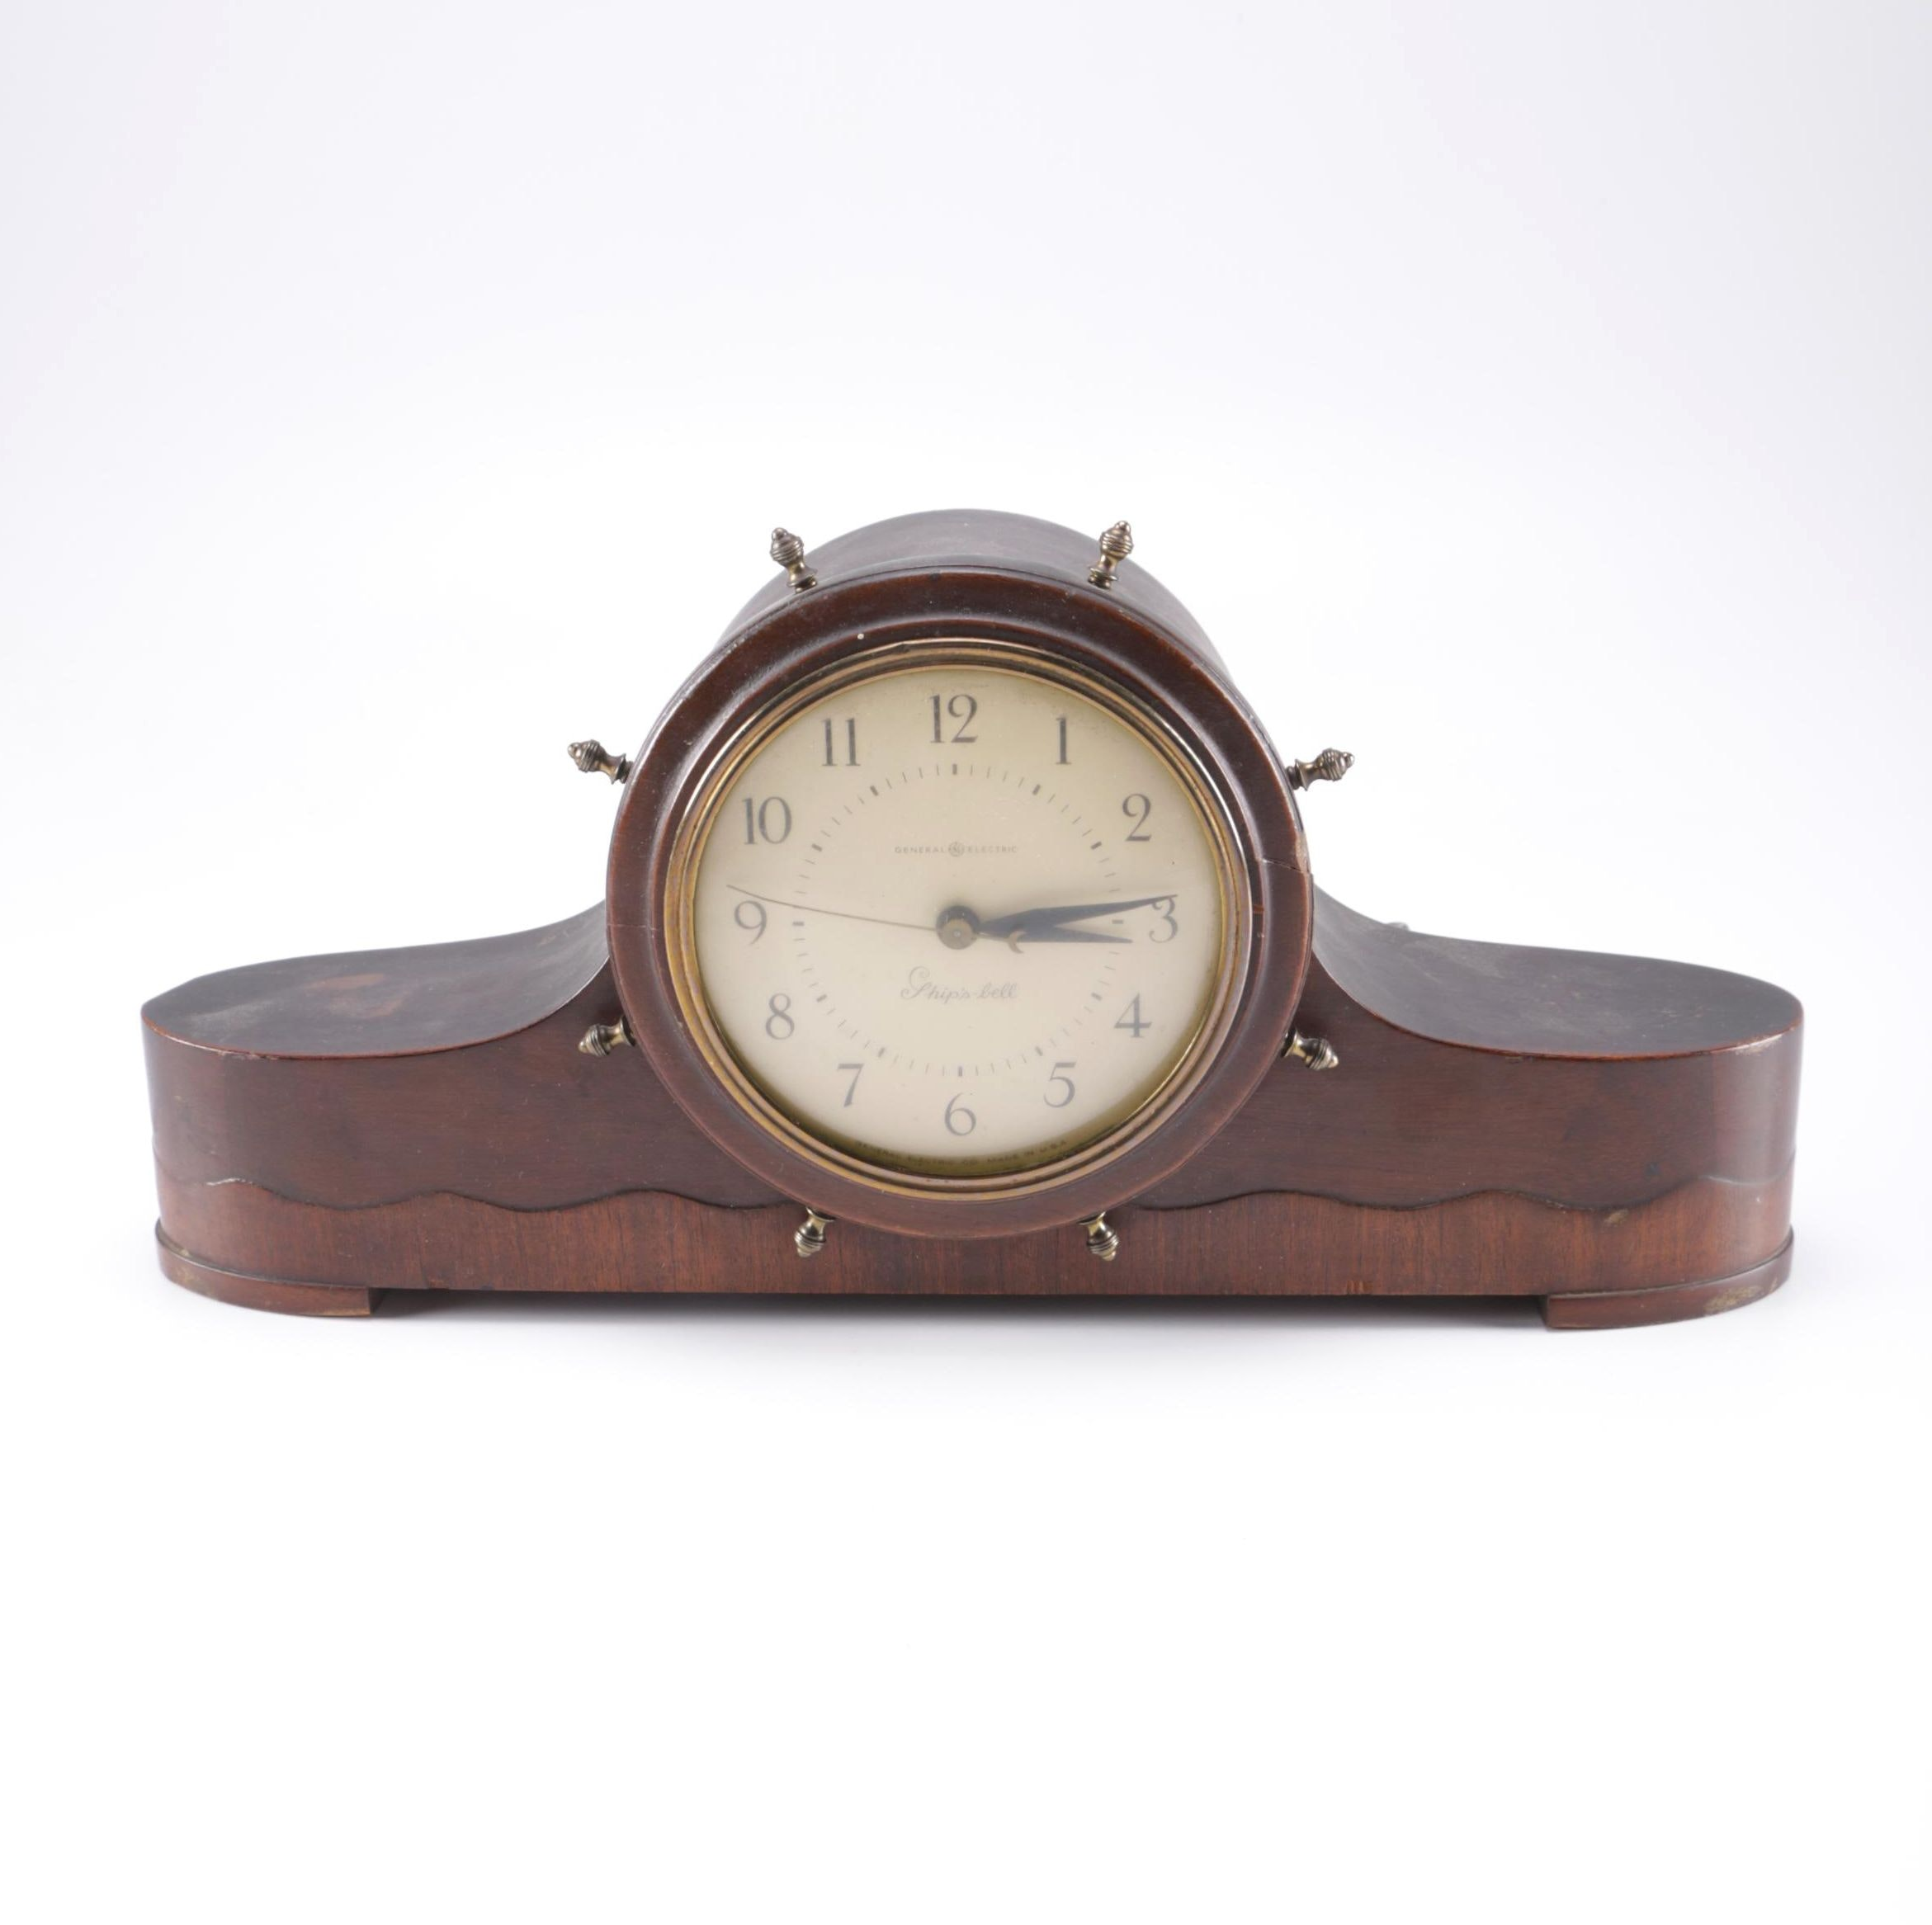 General Electric Ships Bell Mantel Clock